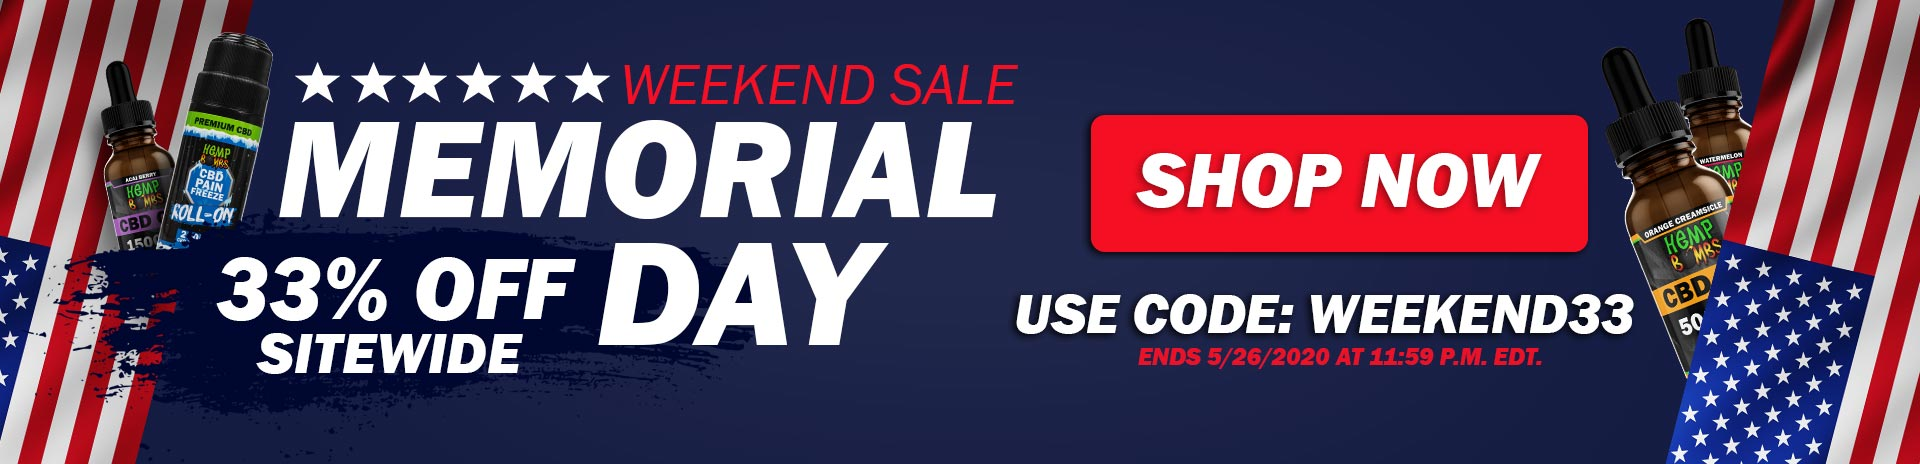 Premium CBD Products from Hemp Bombs - Memorial Day Sale